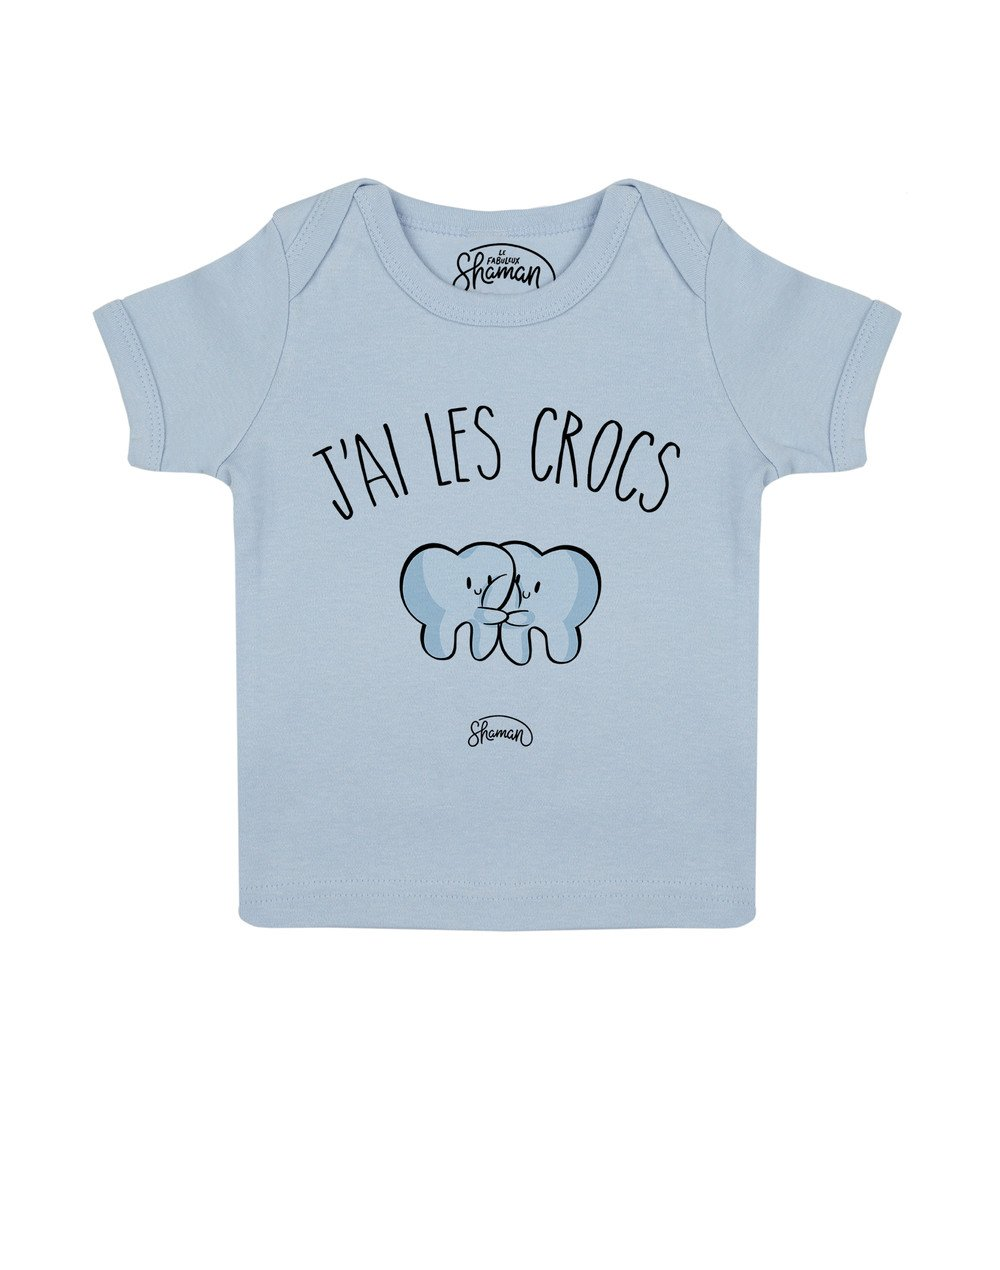 Tee shirt Les crocs